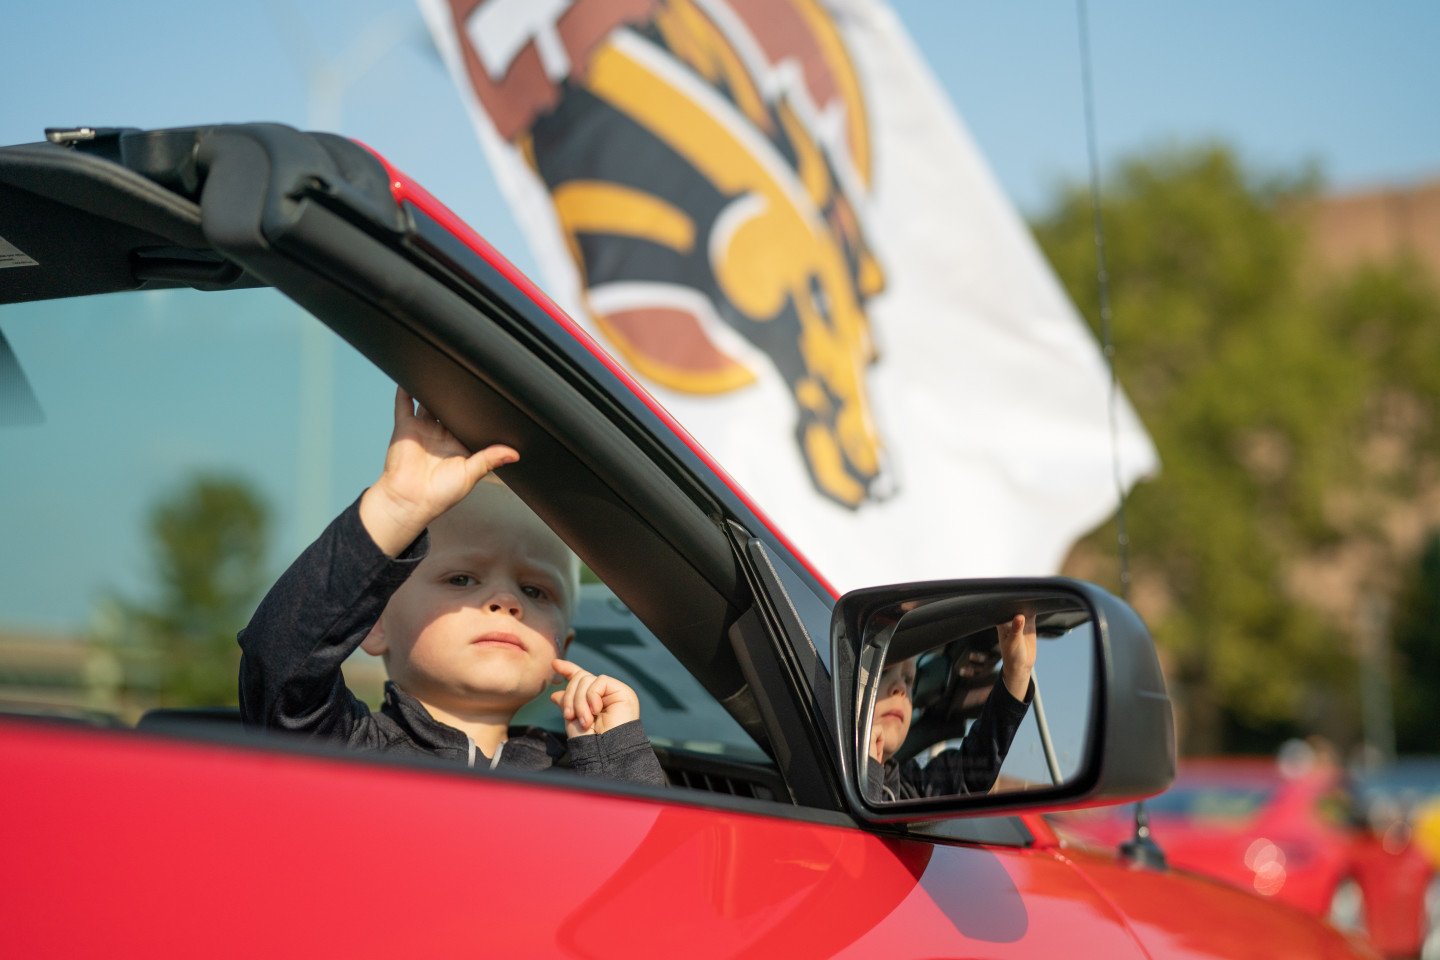 A child sits in a convertible.